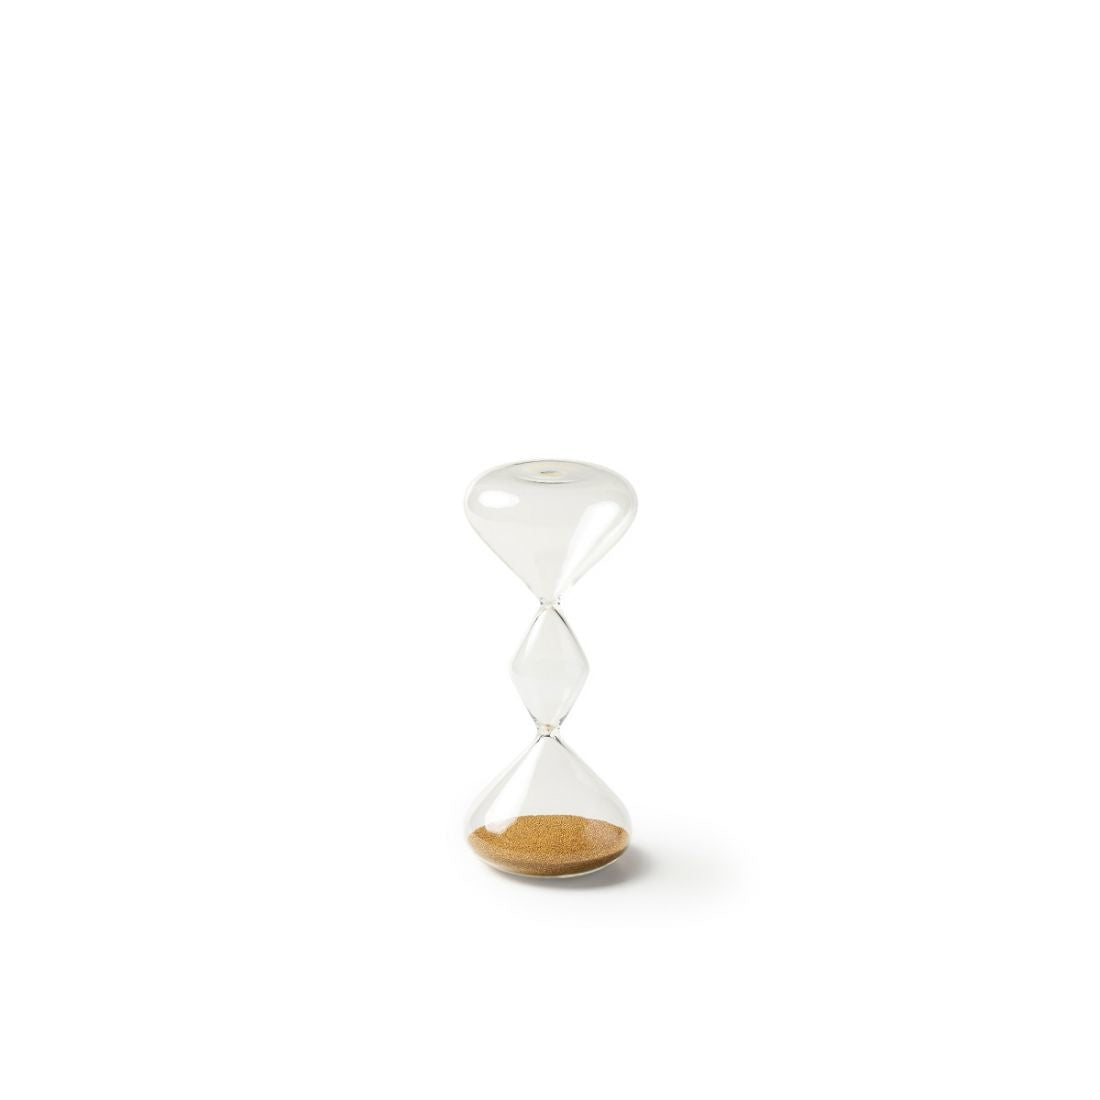 Gold Hourglass, 30 minutes